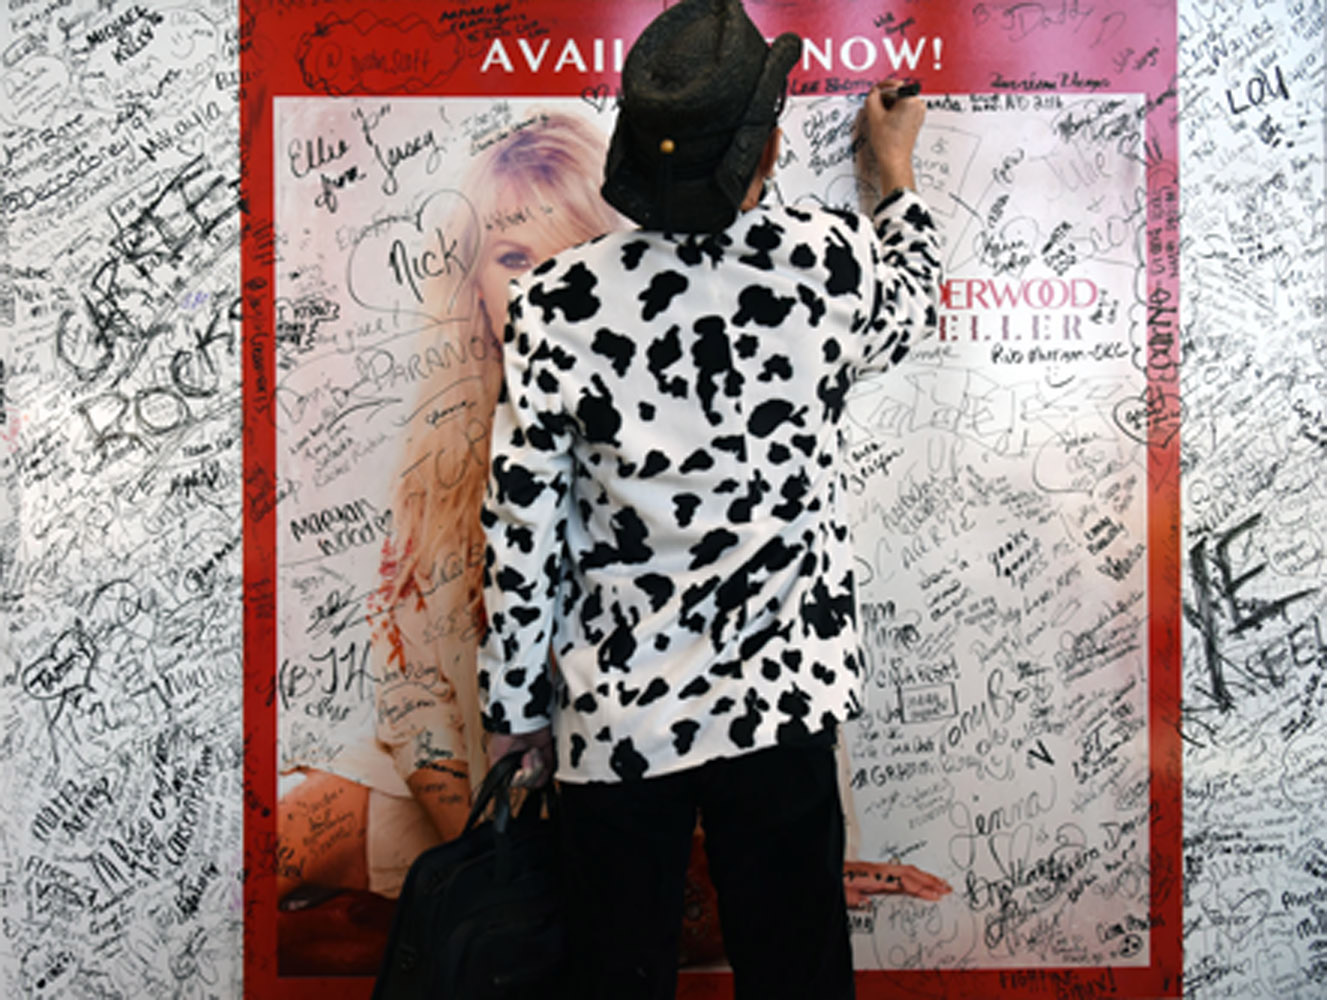 A poster is signed by a country musician, 2017.